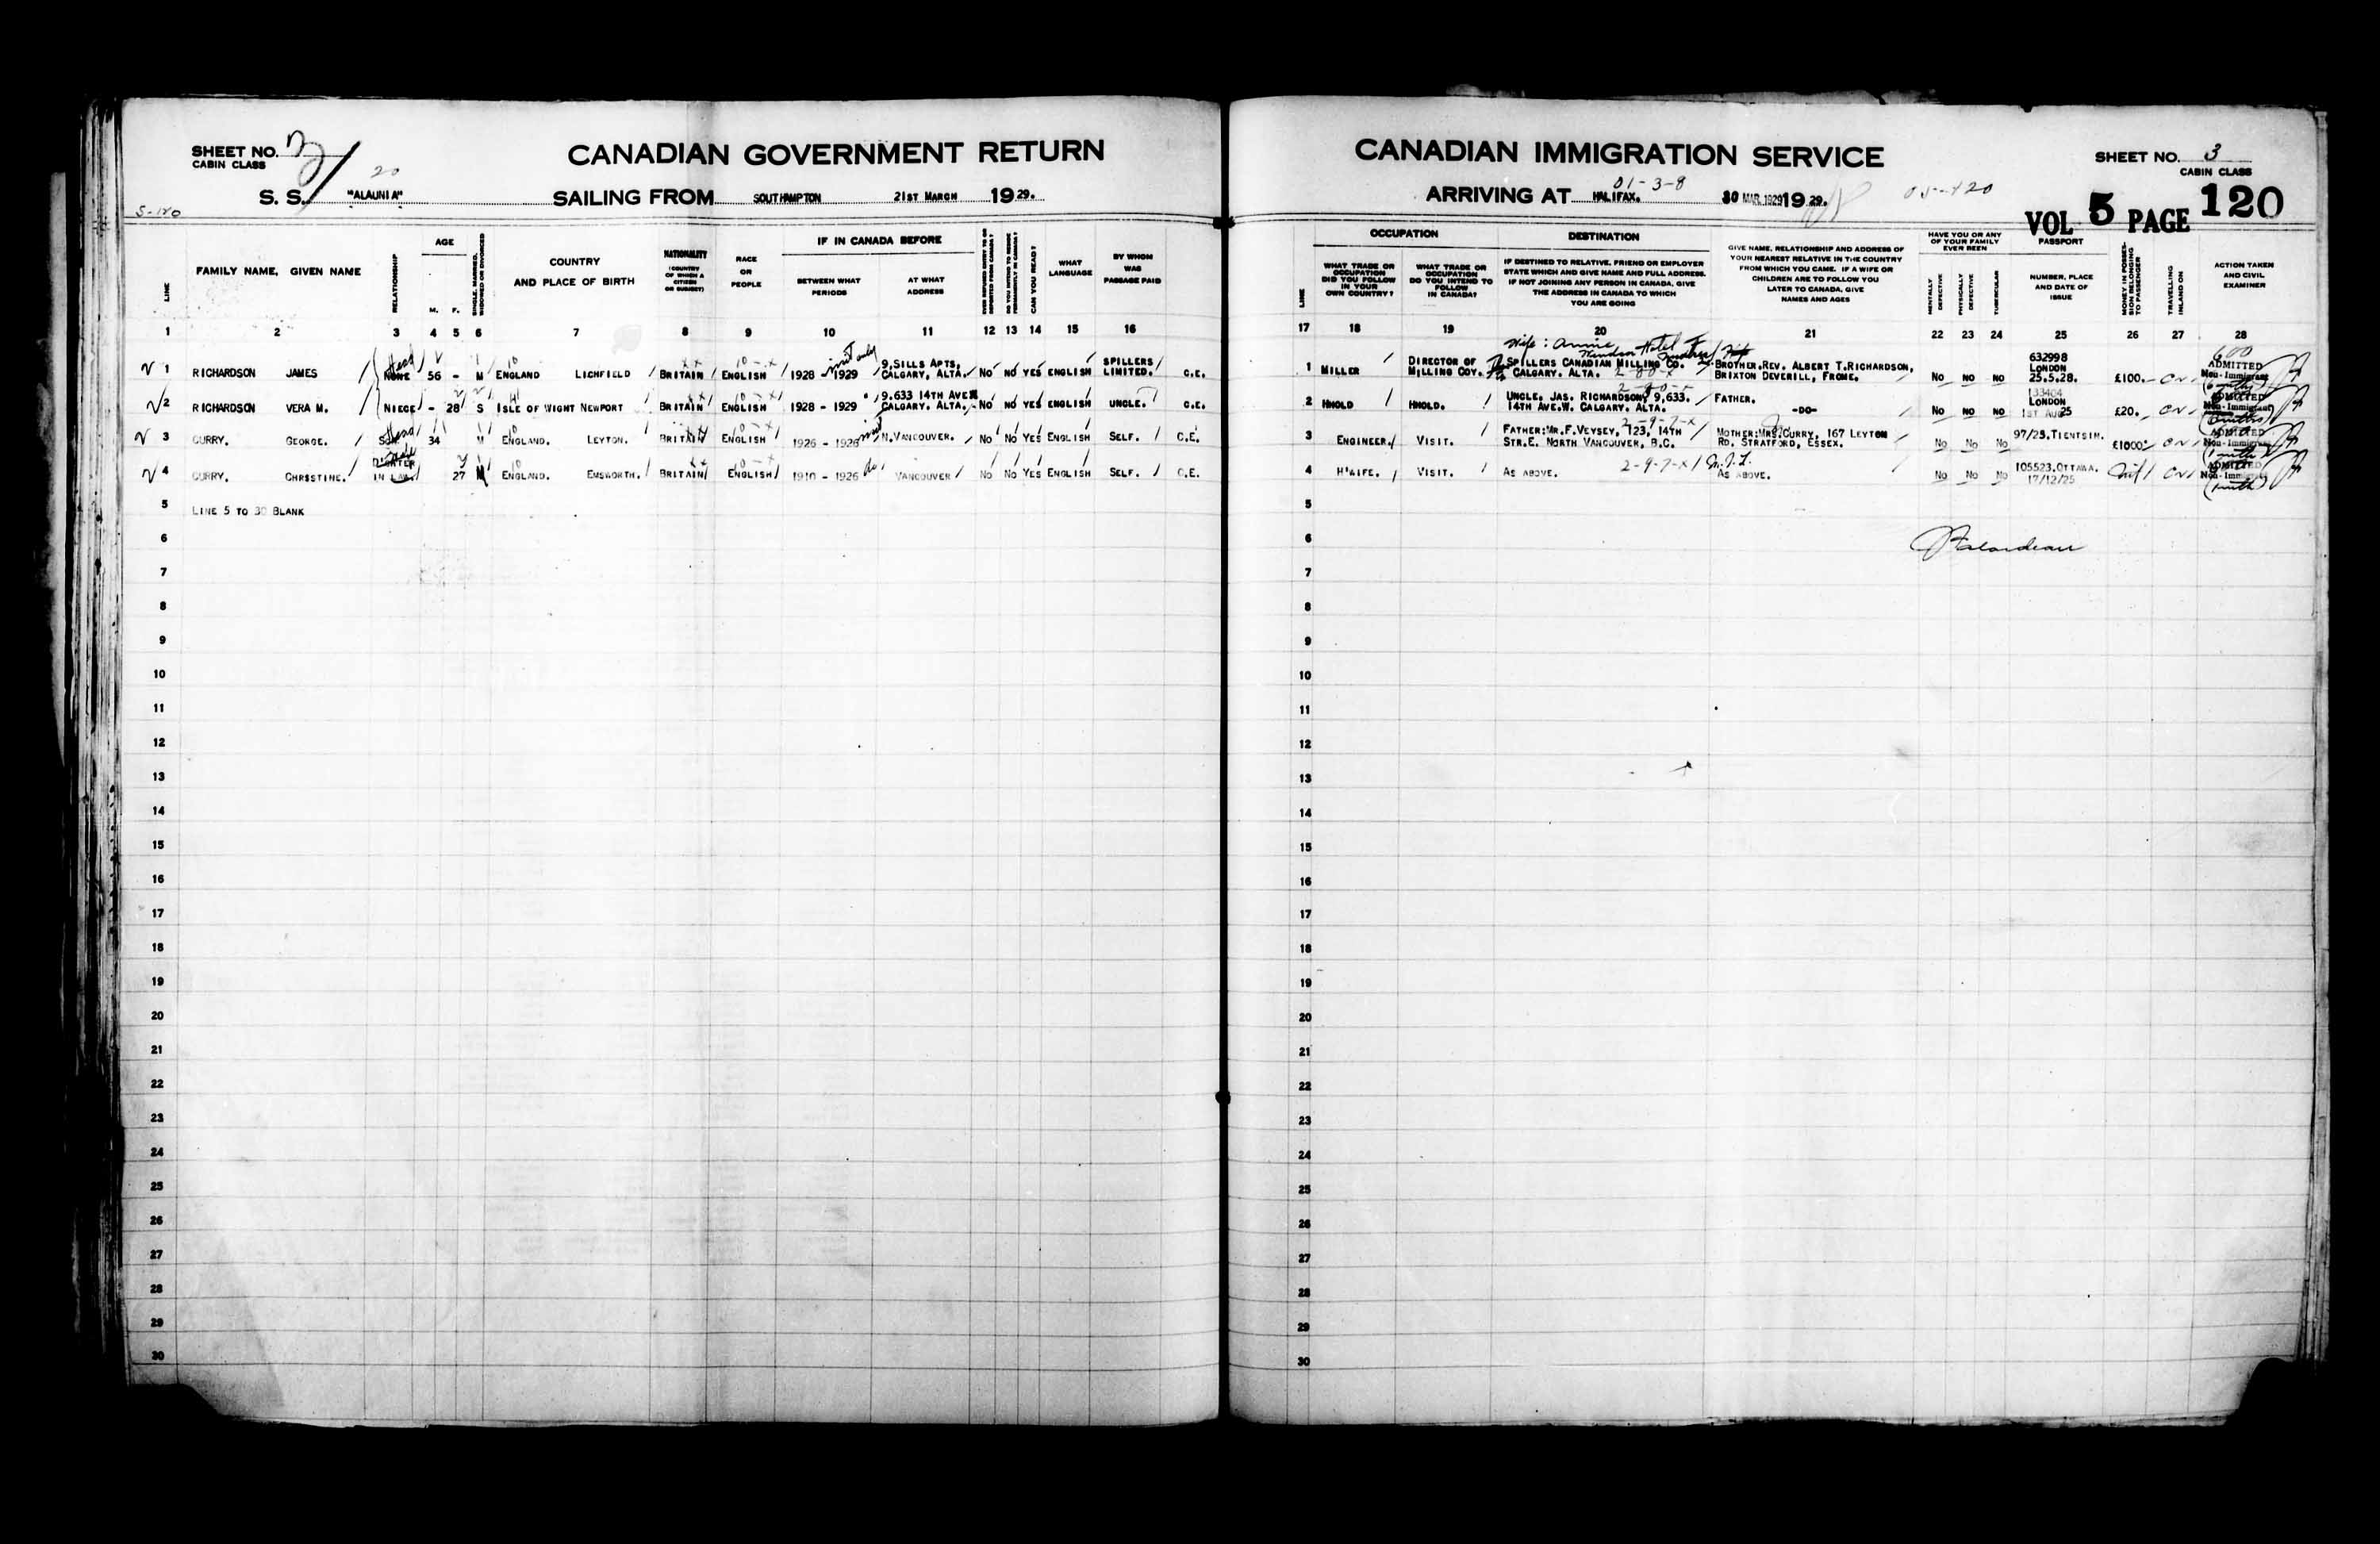 Title: Passenger Lists: Halifax (1925-1935) - Mikan Number: 134853 - Microform: t-14819